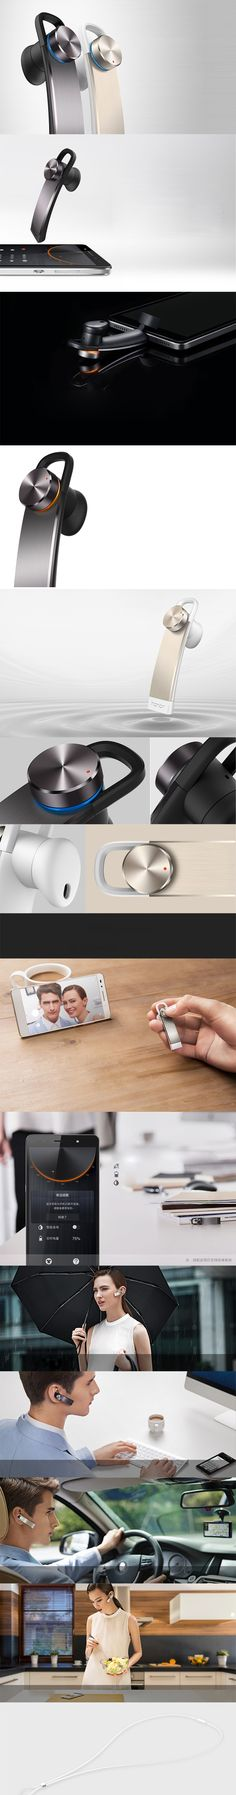 HUAWEI Whistle Honor AM07 Voice Control Fast Charging Bluetooth Earphone for Huawei Honor 7/iPhone 6 etc - Grey